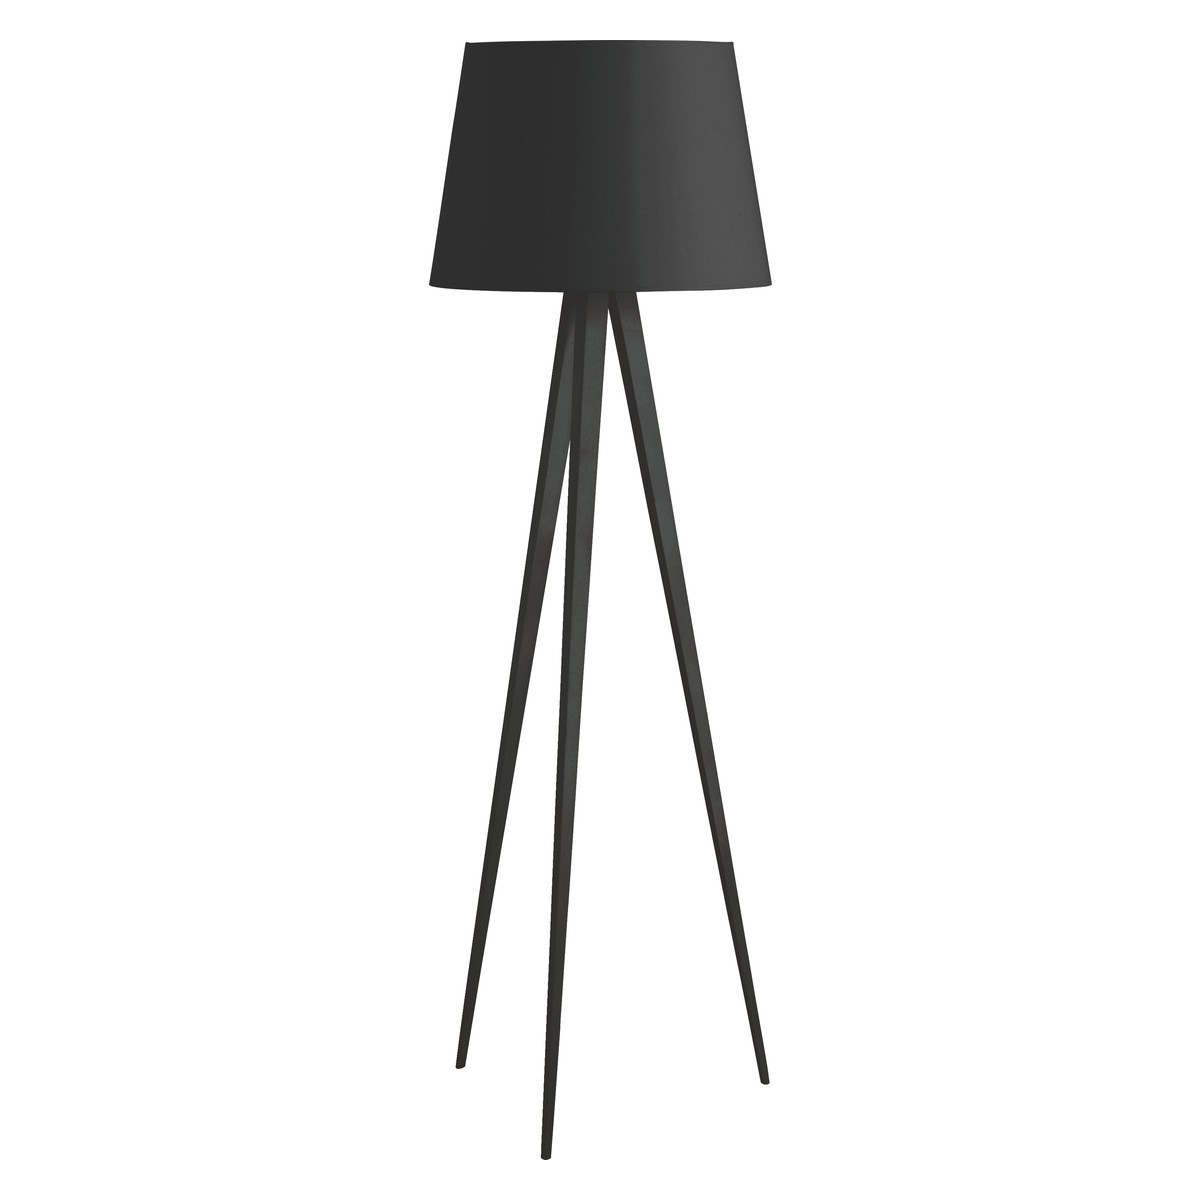 Awesome Tripod Lamp for Interior Lighting Ideas: Tripod Lamp | Antique Floor Lamps | Wooden Tripod Floor Lamps